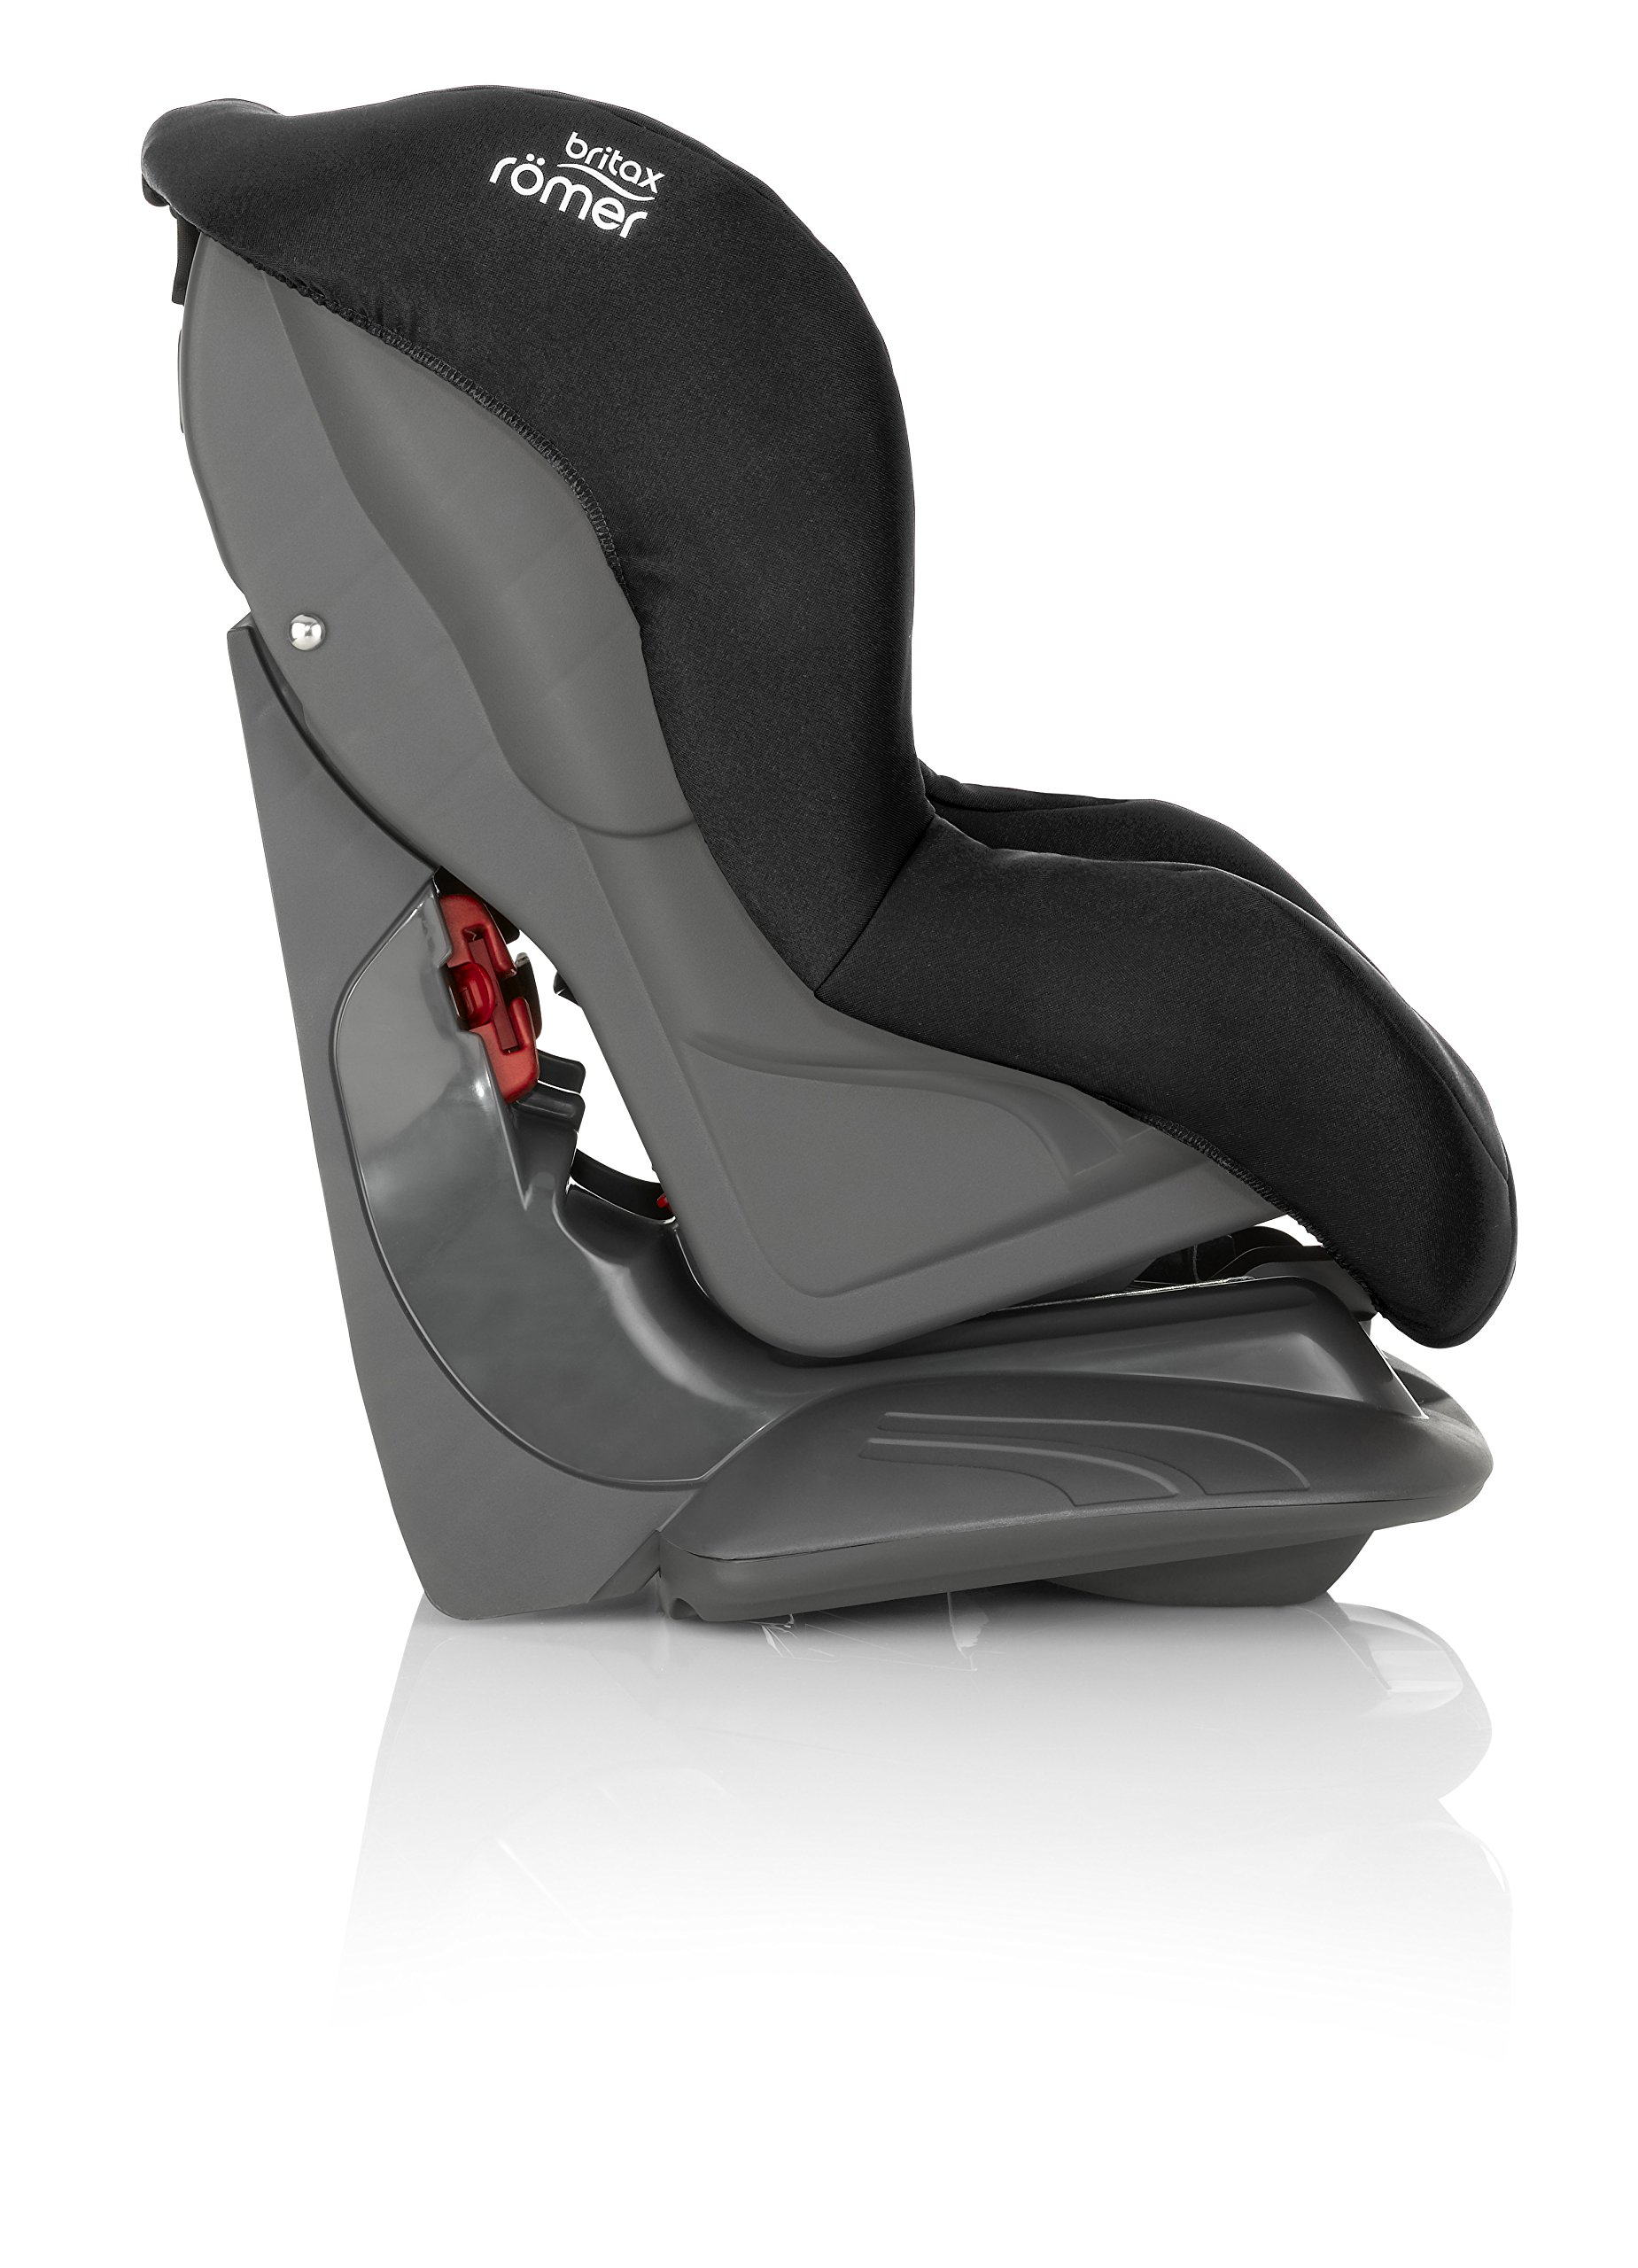 Britax Römer ECLIPSE Group 1 (9-18kg) Car Seat - Cosmos Black Britax Simple installation with a 3-point or 2-point seat belt Superior protection - side impact protection, performance chest pads and pitch control system TUV certified for aircraft travel 5